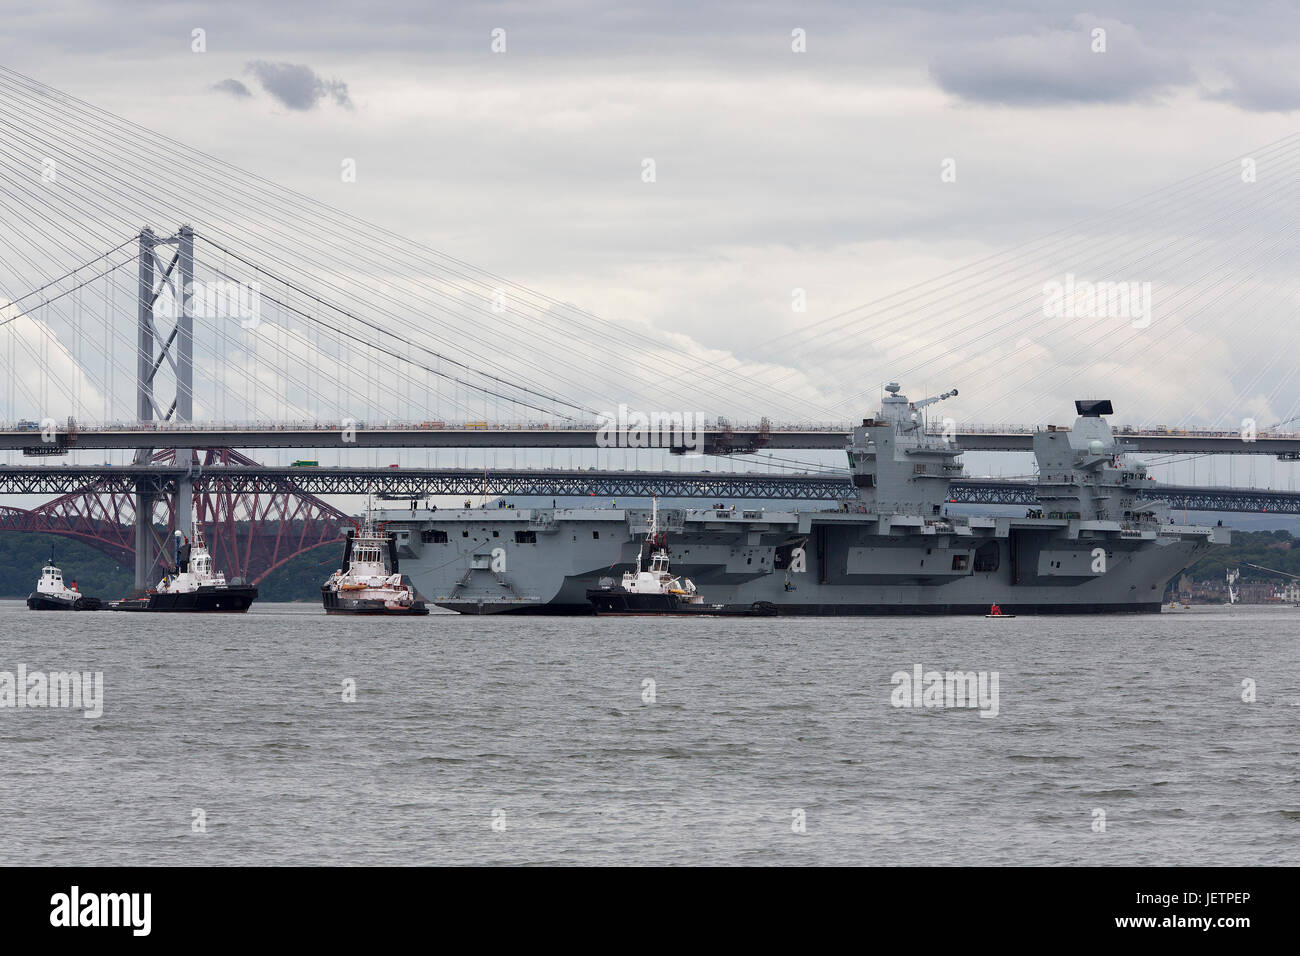 Aircraft Carrier HMS Queen Elizabeth leaving the Rosyth Dockyard in Fife, Scotland - Stock Image